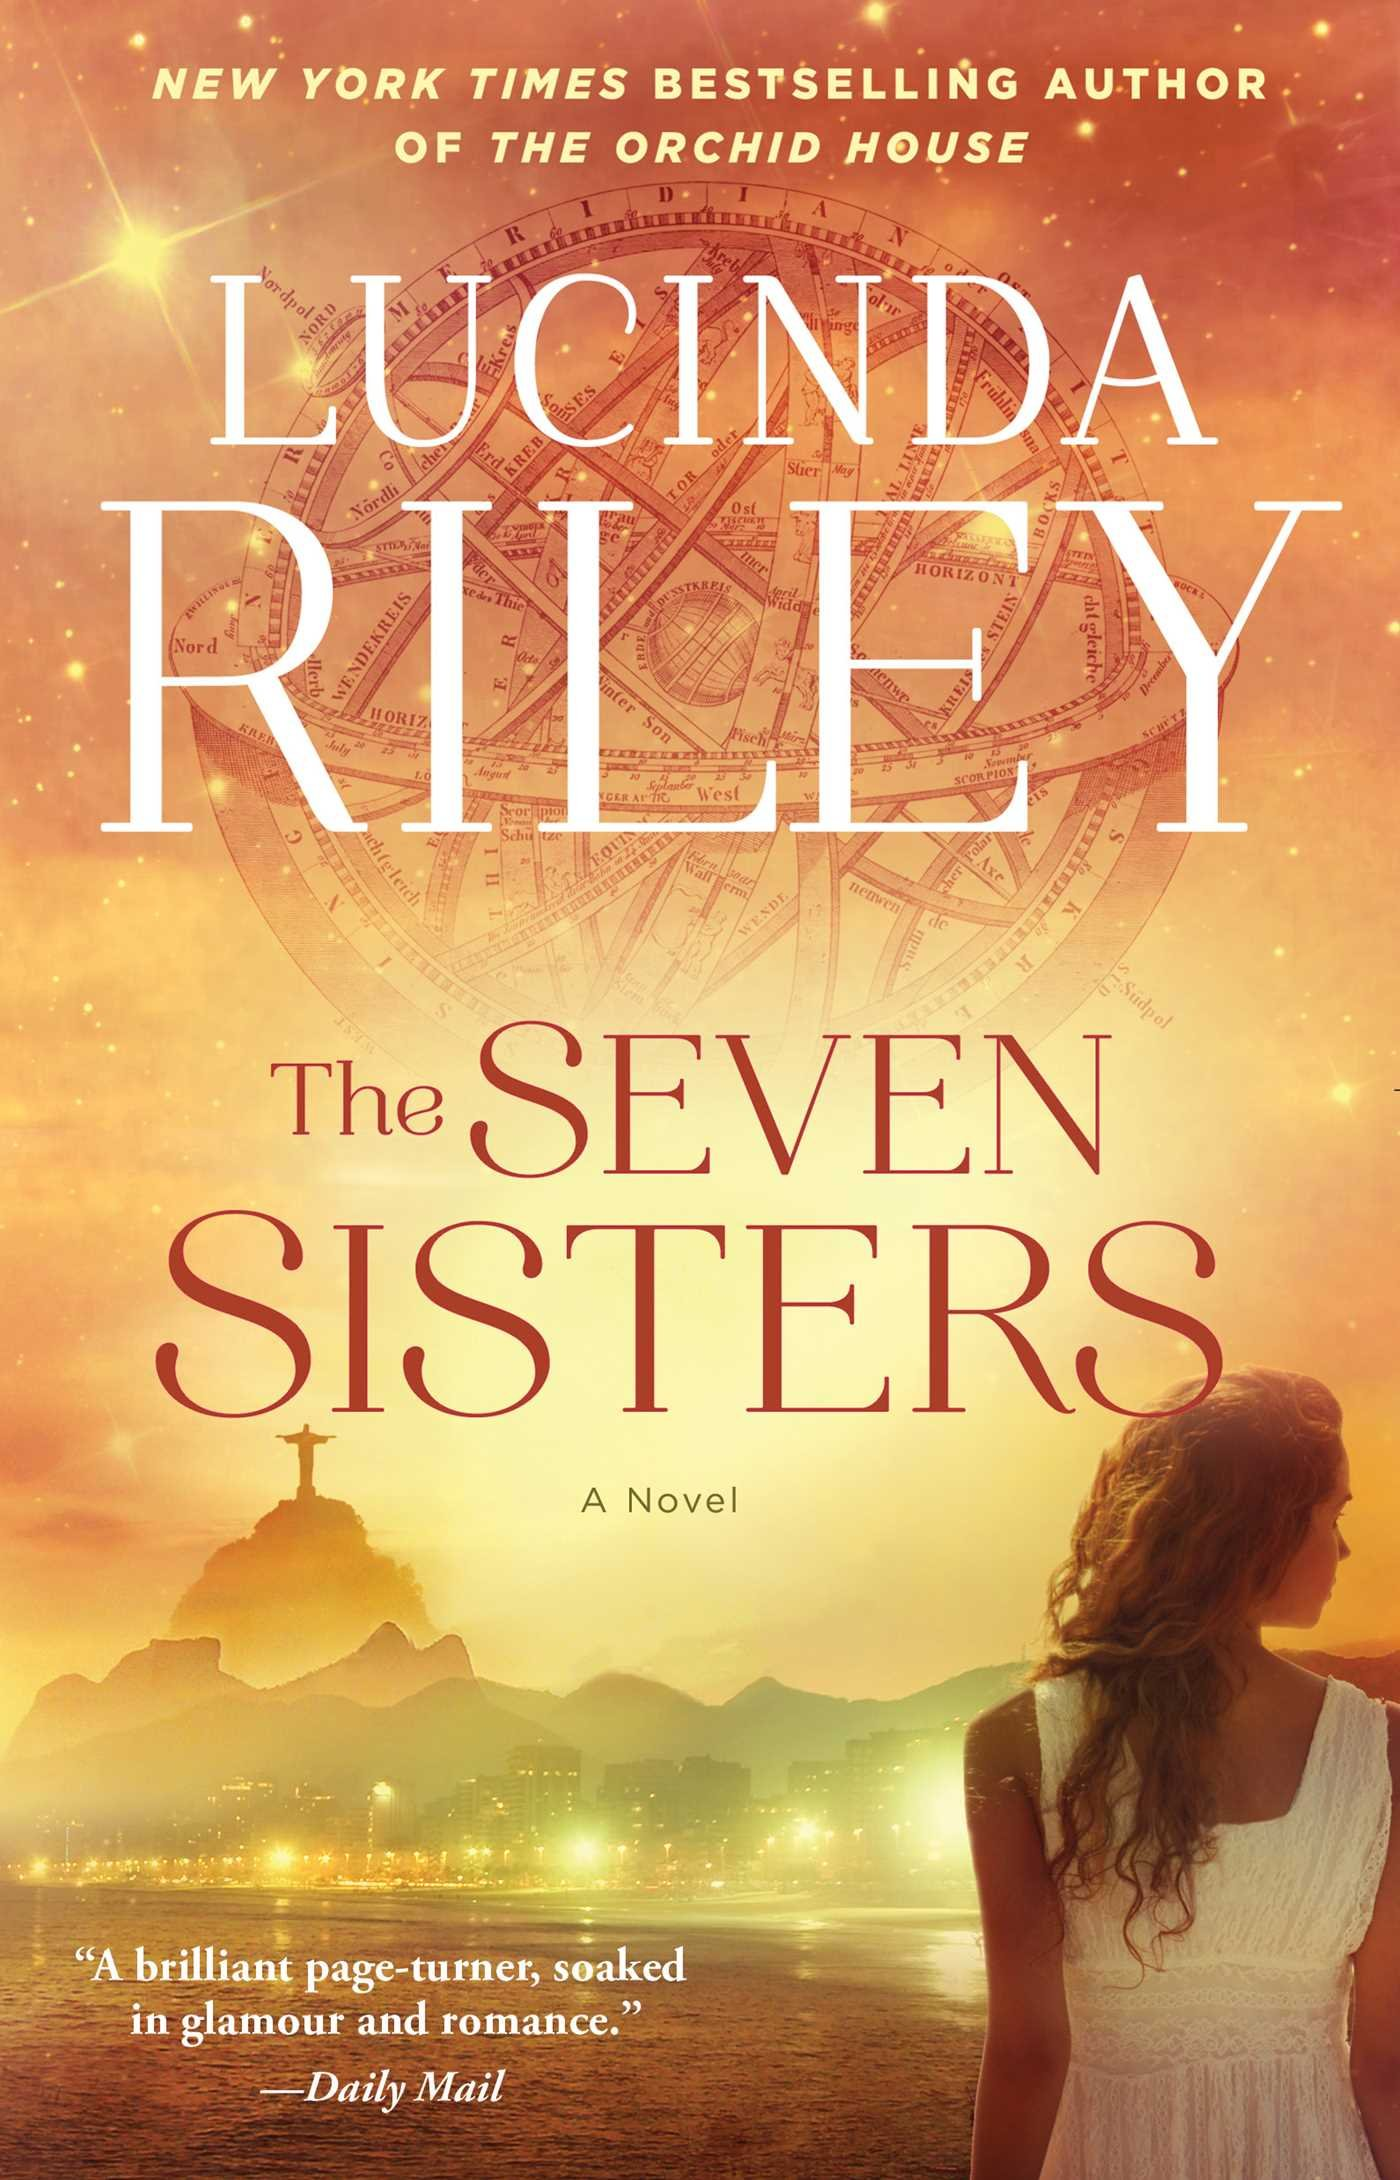 The Seven Sisters Book 1